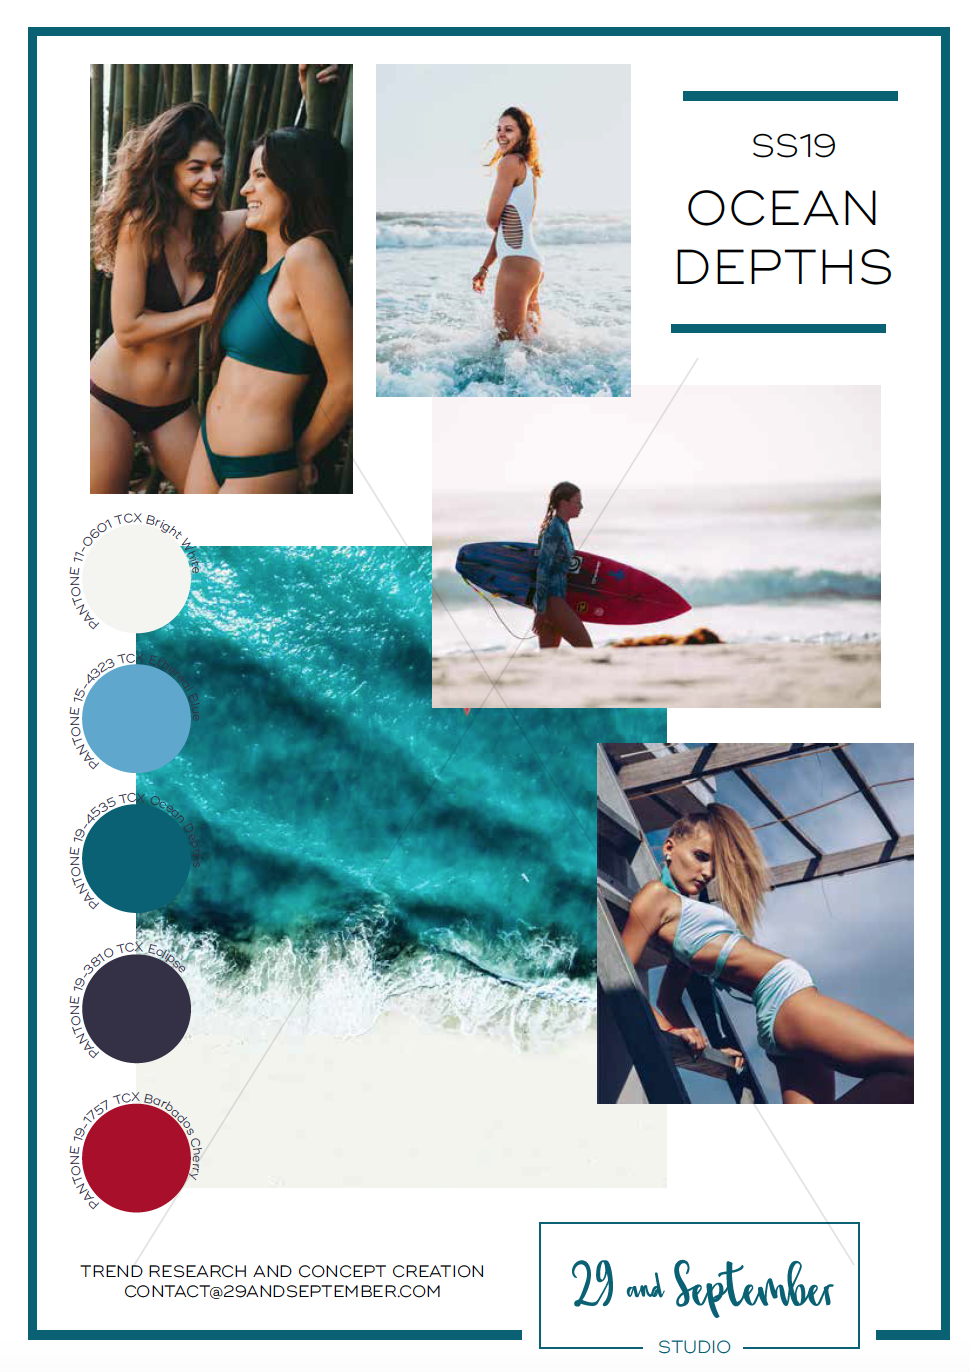 SS19 Women's Swimwear Trend Ocean Depths   Swim technical drawings for apparel by 29andSeptember Studio   Free fashion trend information